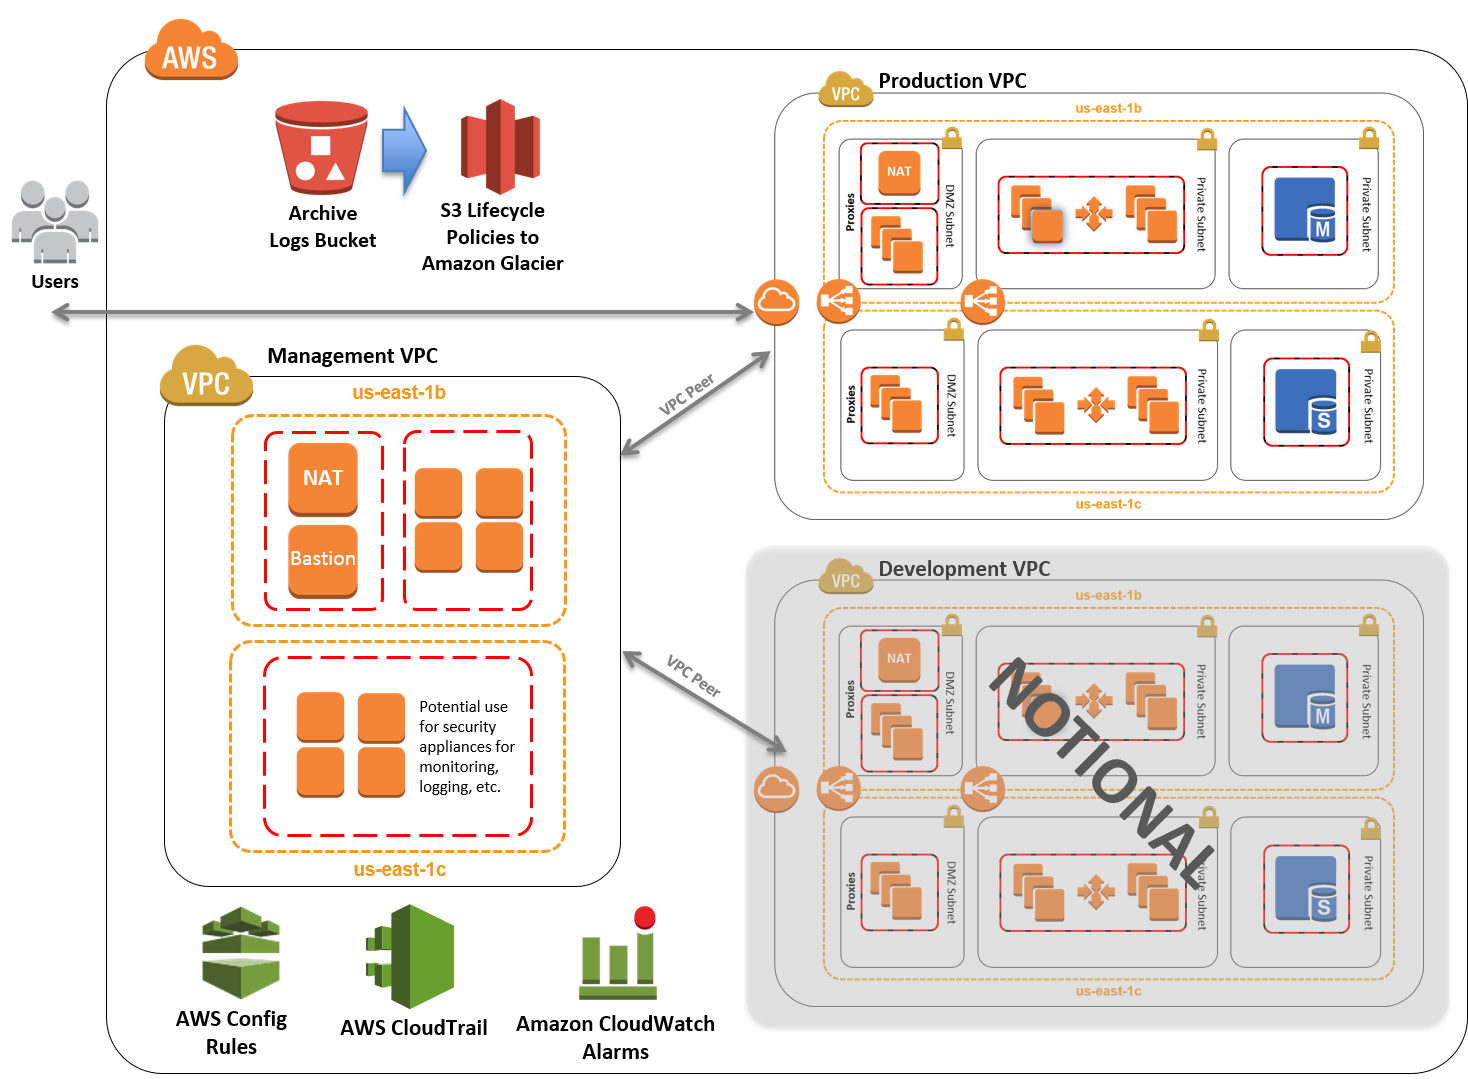 Quick Start architecture for NIST-based frameworks on the AWS Cloud